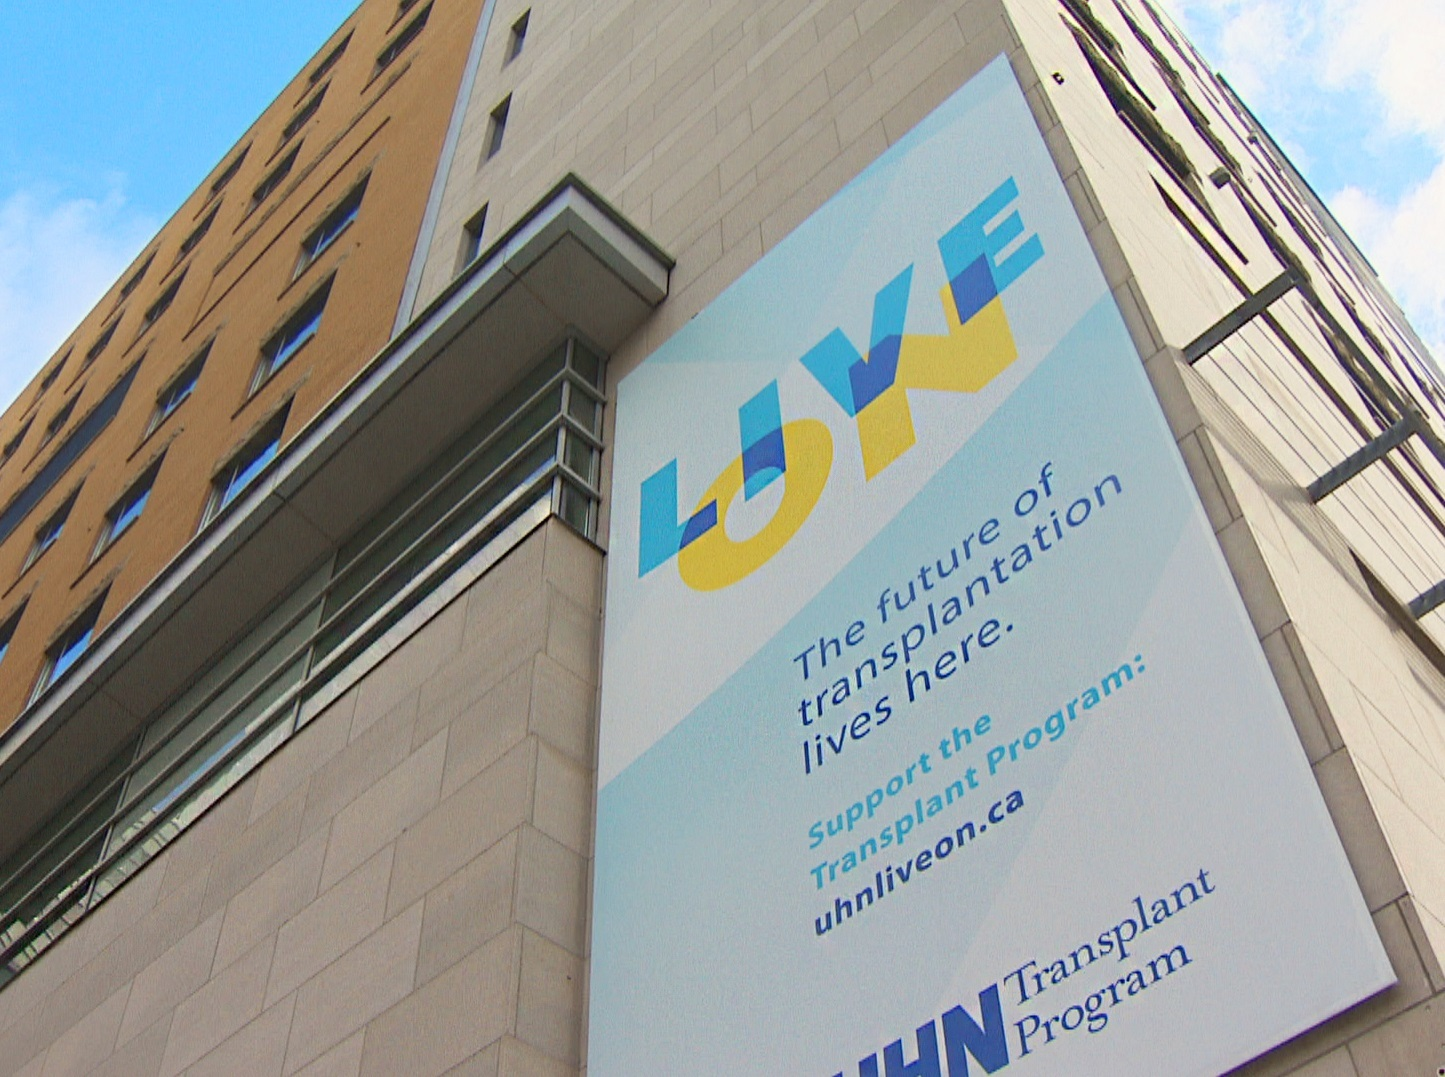 The Toronto Lung Transplant Program is considered one of the top programs of its kind in the world. (Dave Laughlin/CBC)